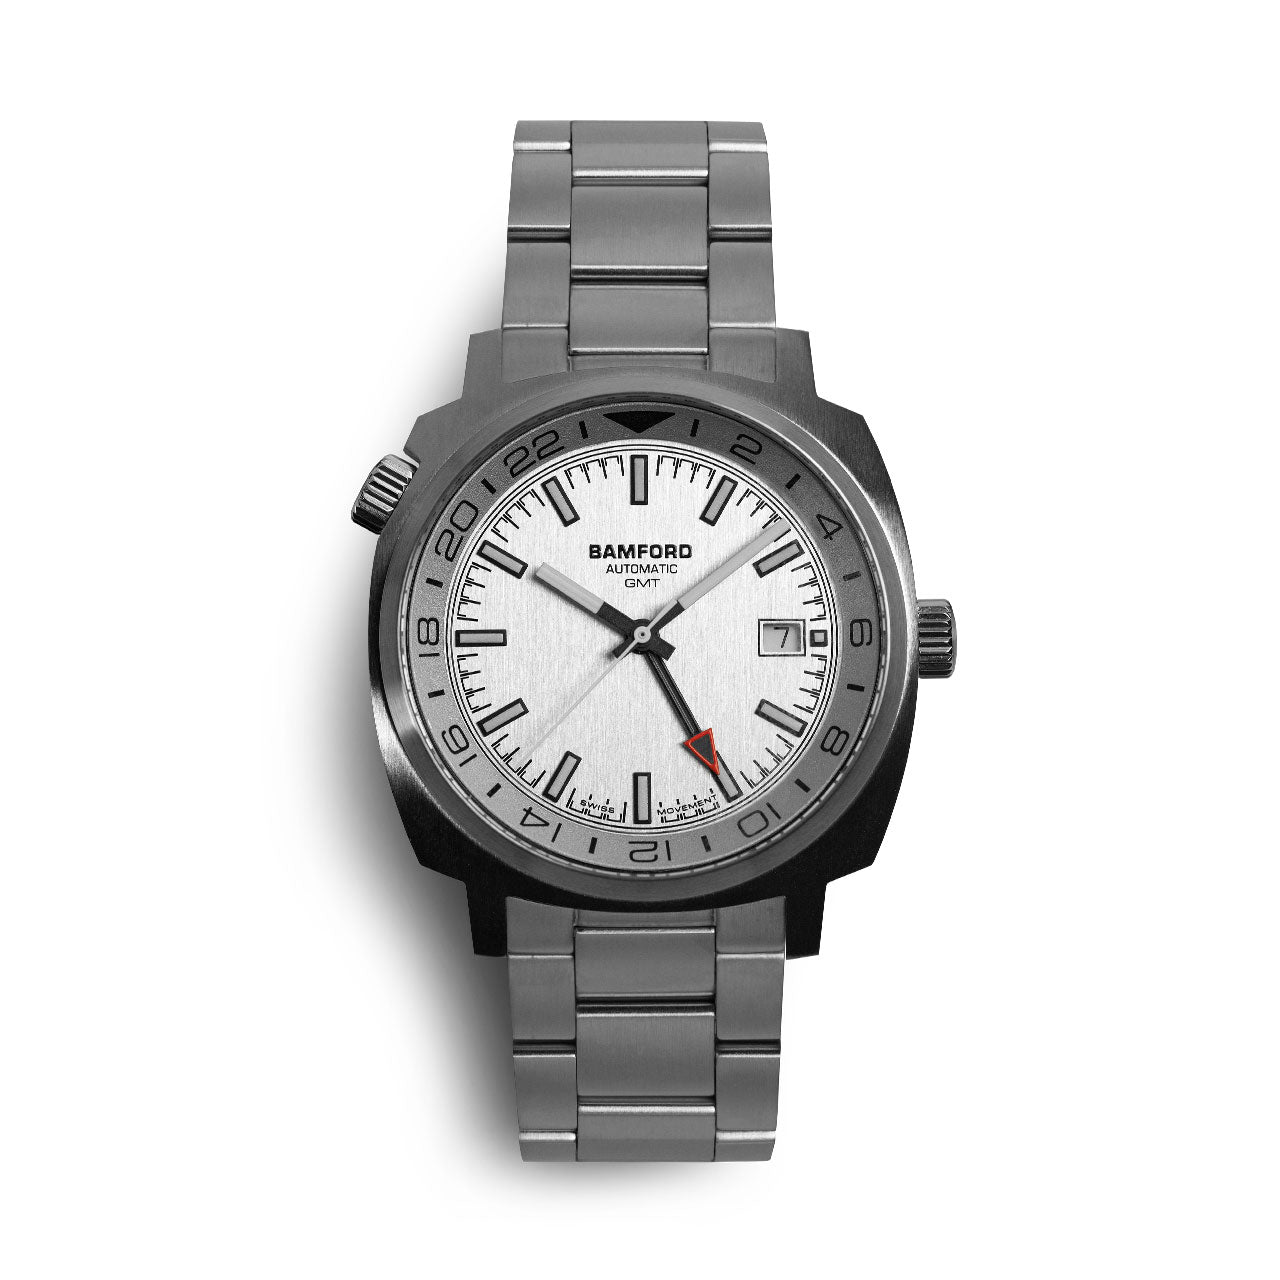 Bamford GMT Mirage Watch